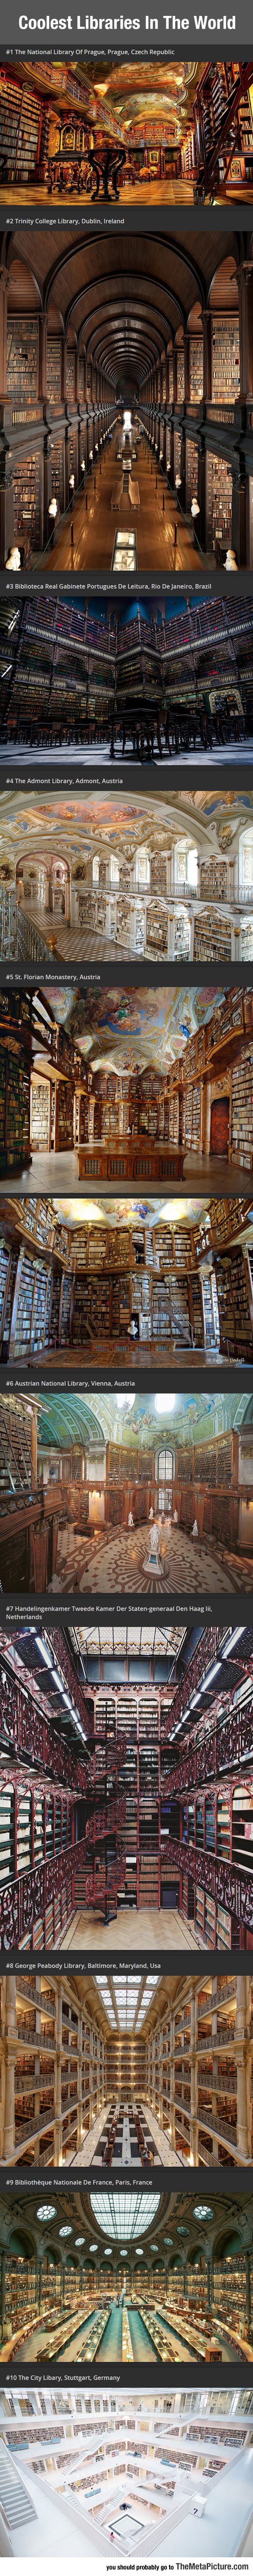 cool-library-world-best-design